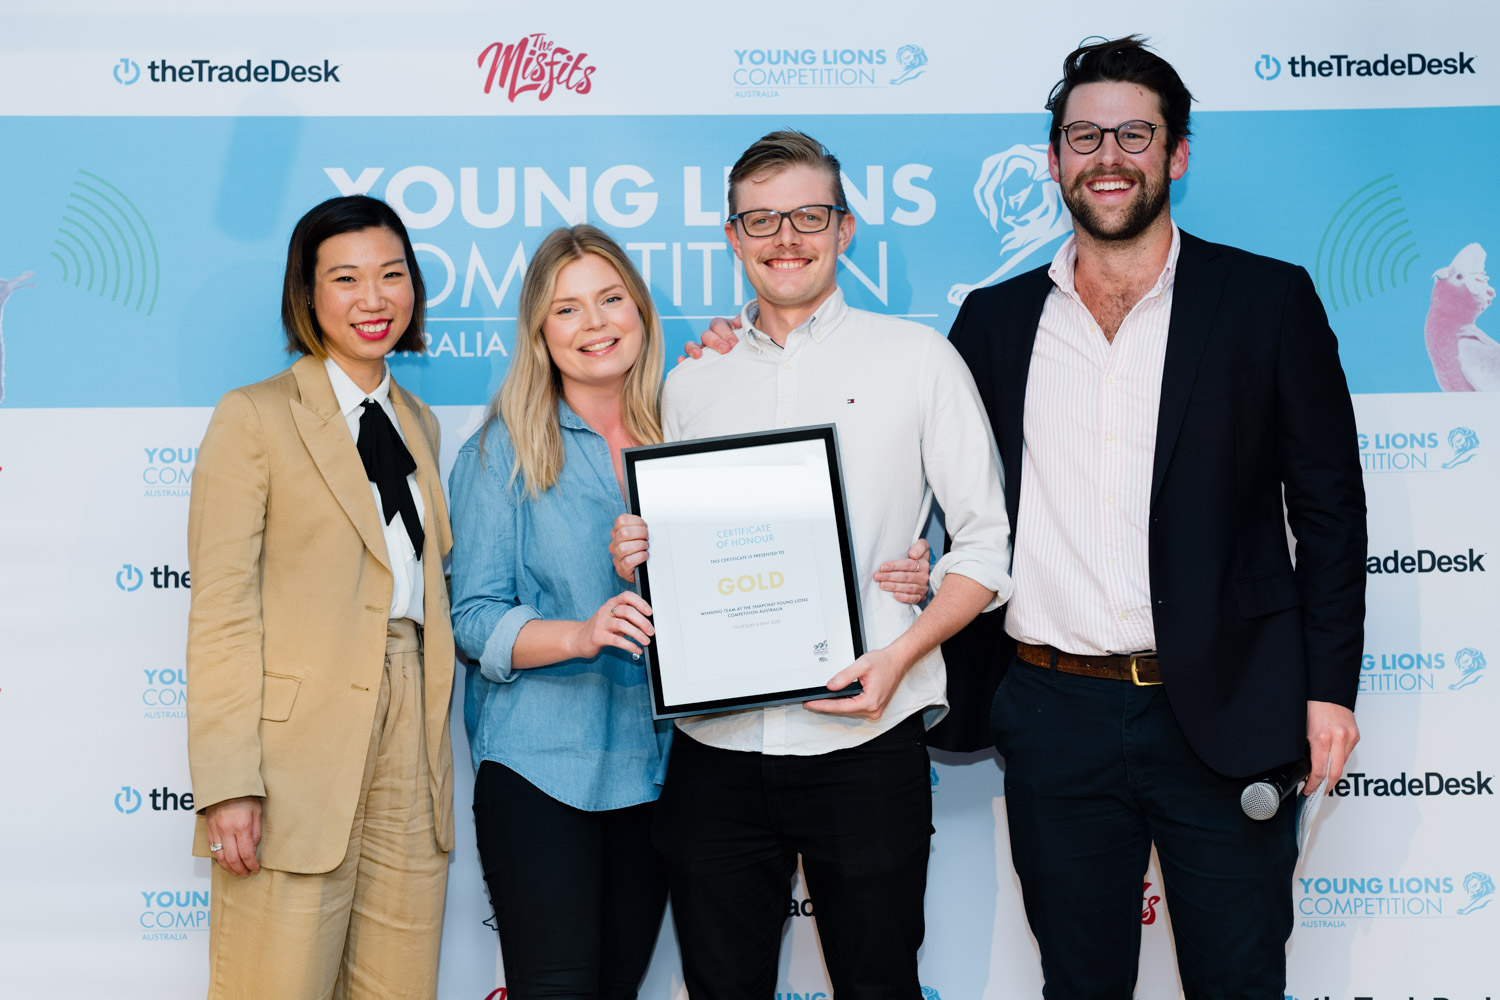 Cannes Lions announces the winners of the 2019 Snapchat Young Lions Australia Competition